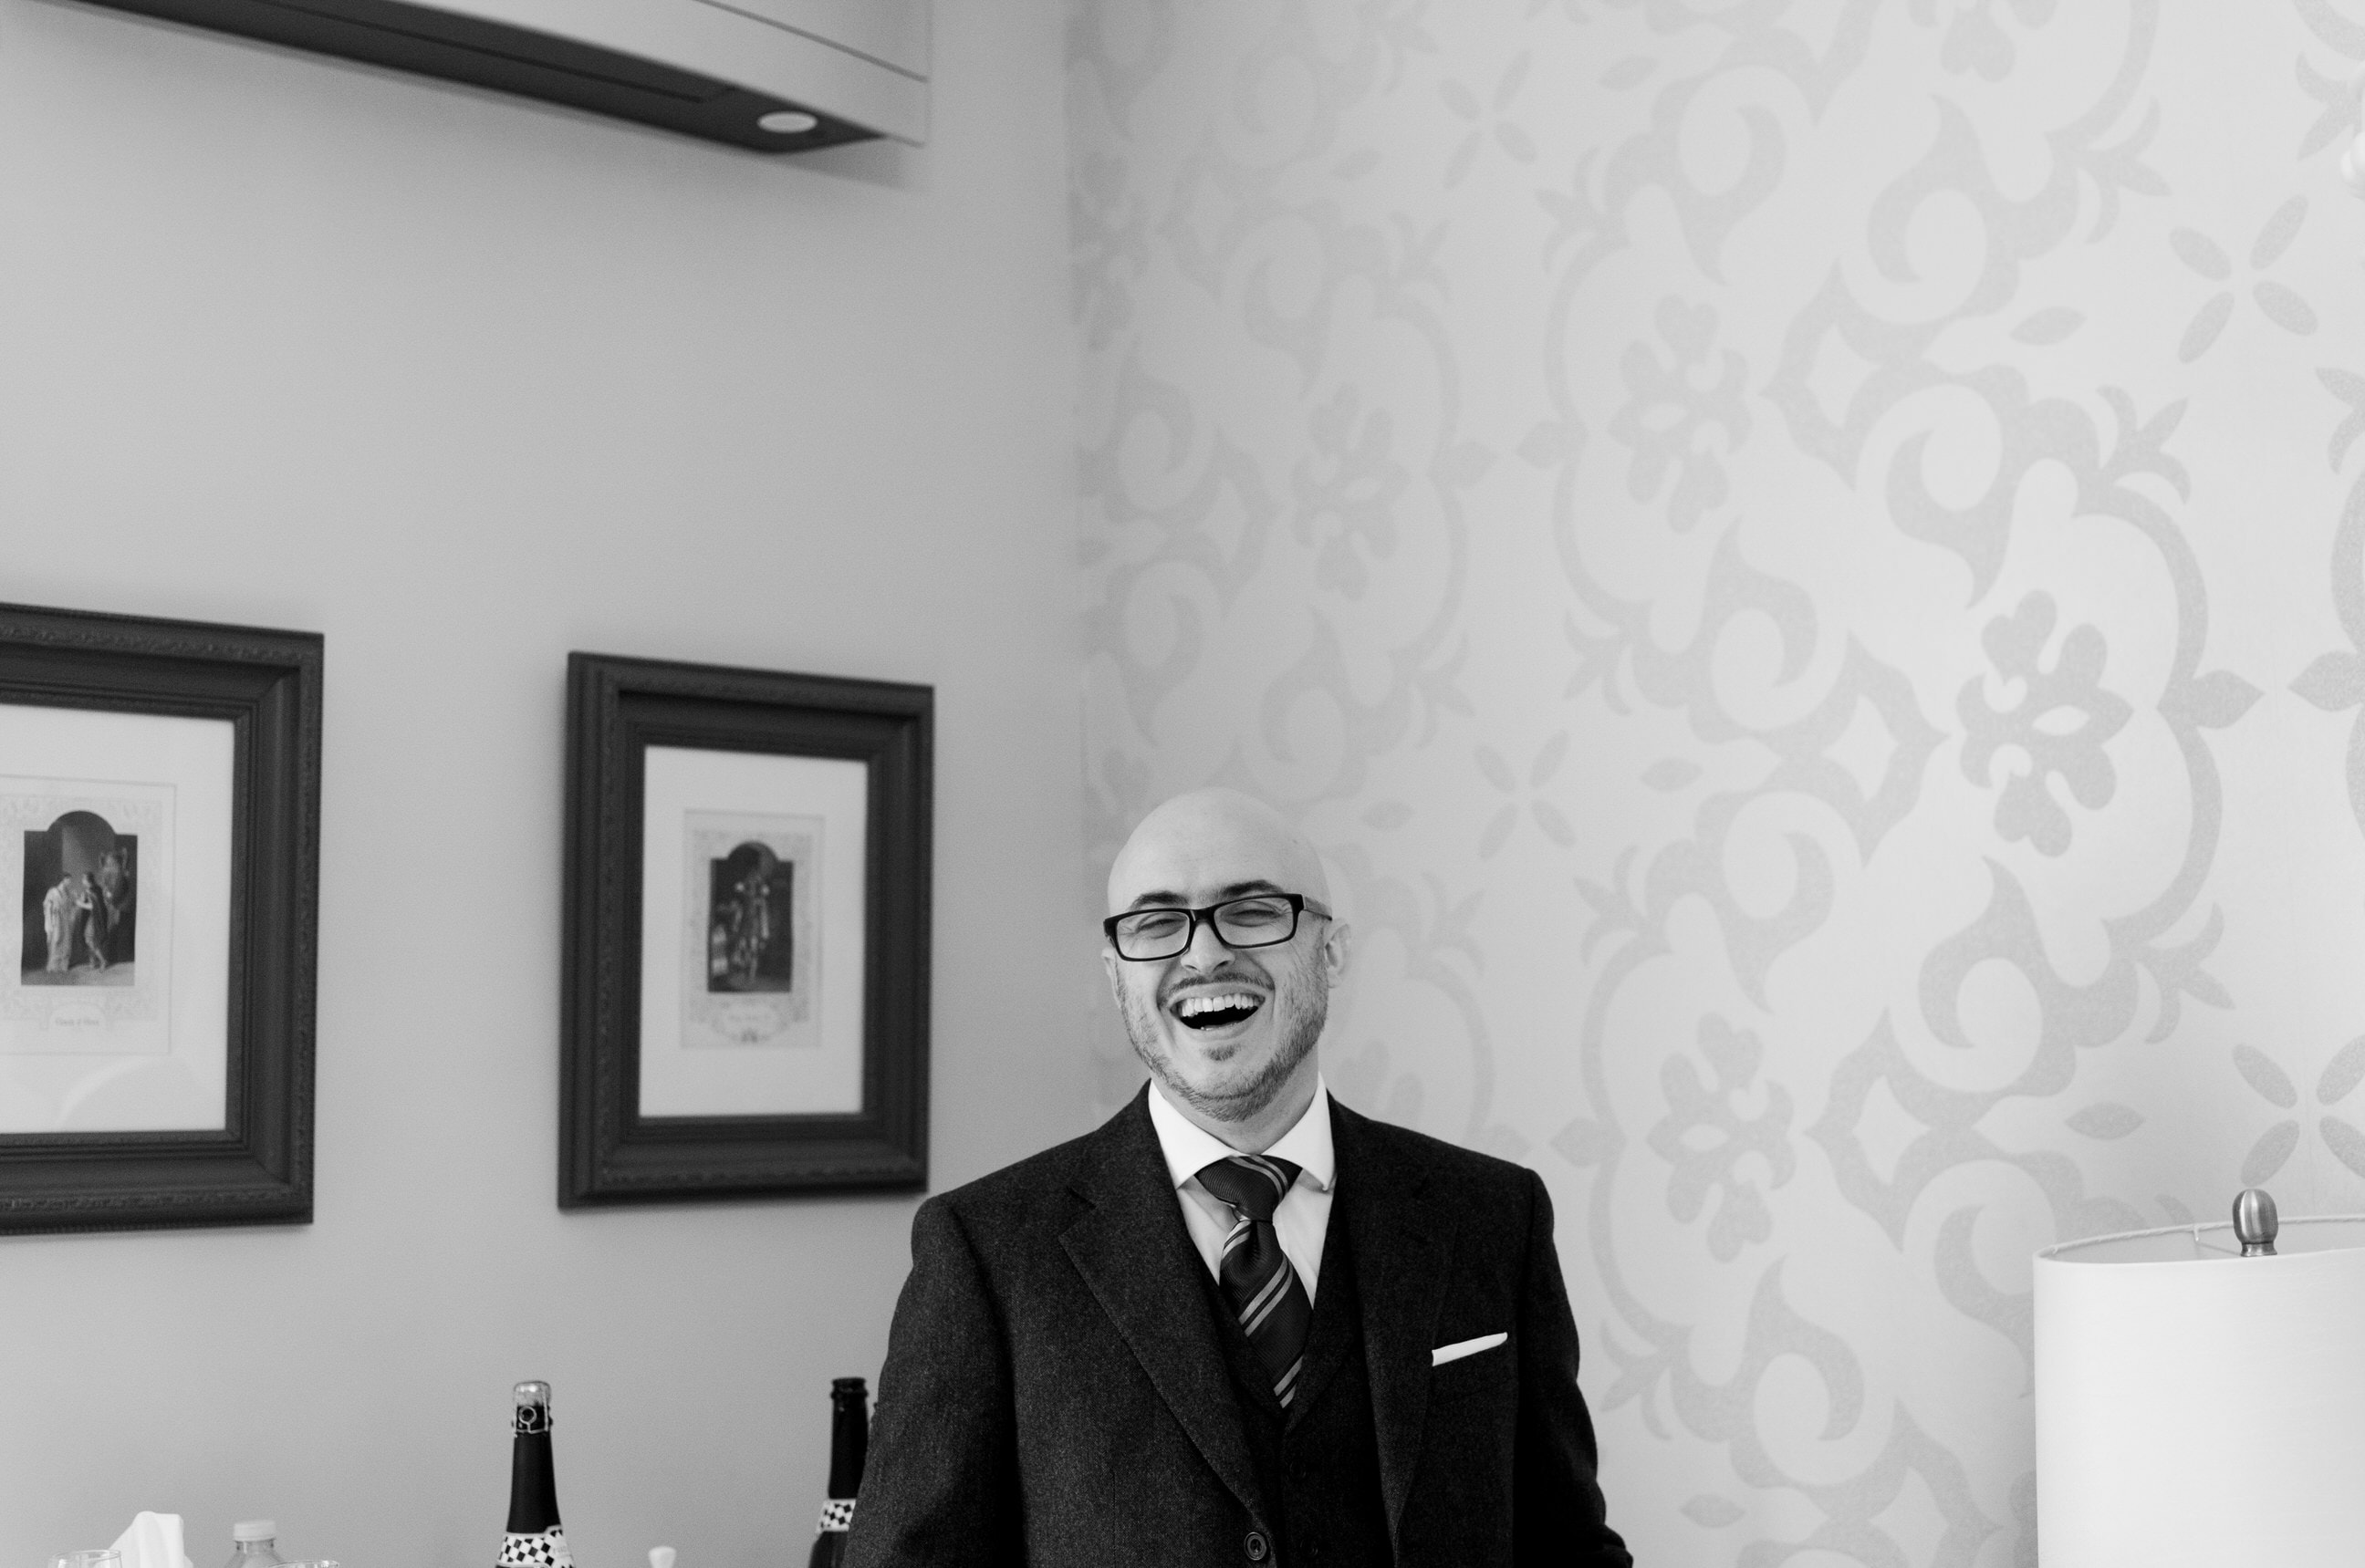 Groomsman in suit, laughing